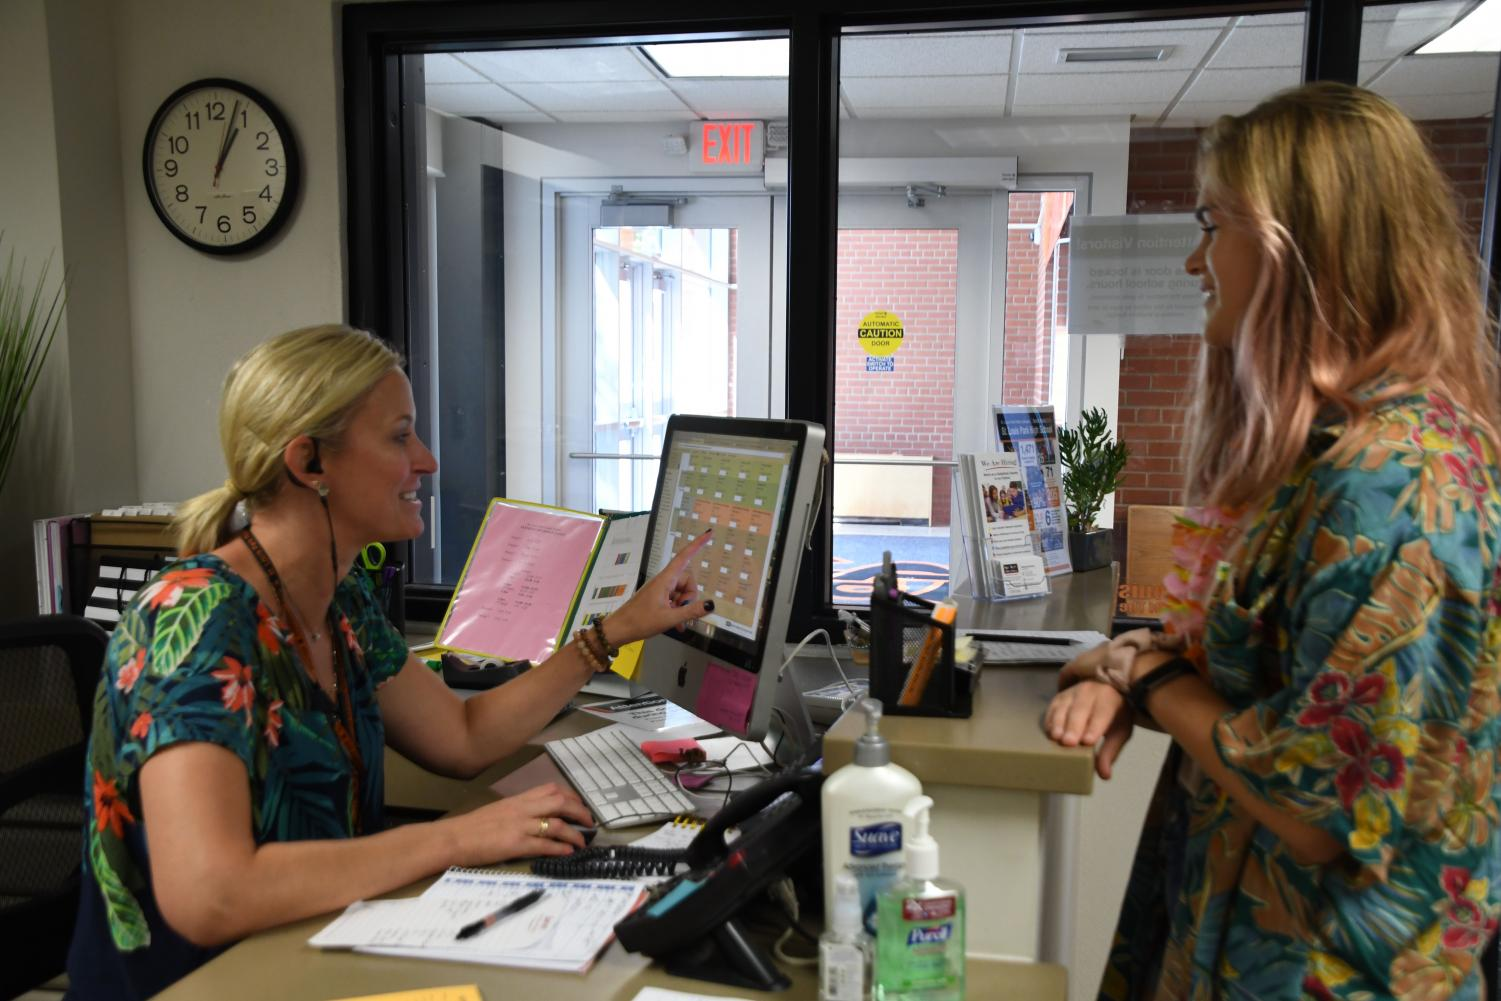 Senior Sophia Davenport jokes with administrator Jennifer Thomas in the student office. According to Assistant Principal Jessica Busse, only seniors are able to leave the school during lunch and they need to return through the student office or cafeteria showing their student ID.